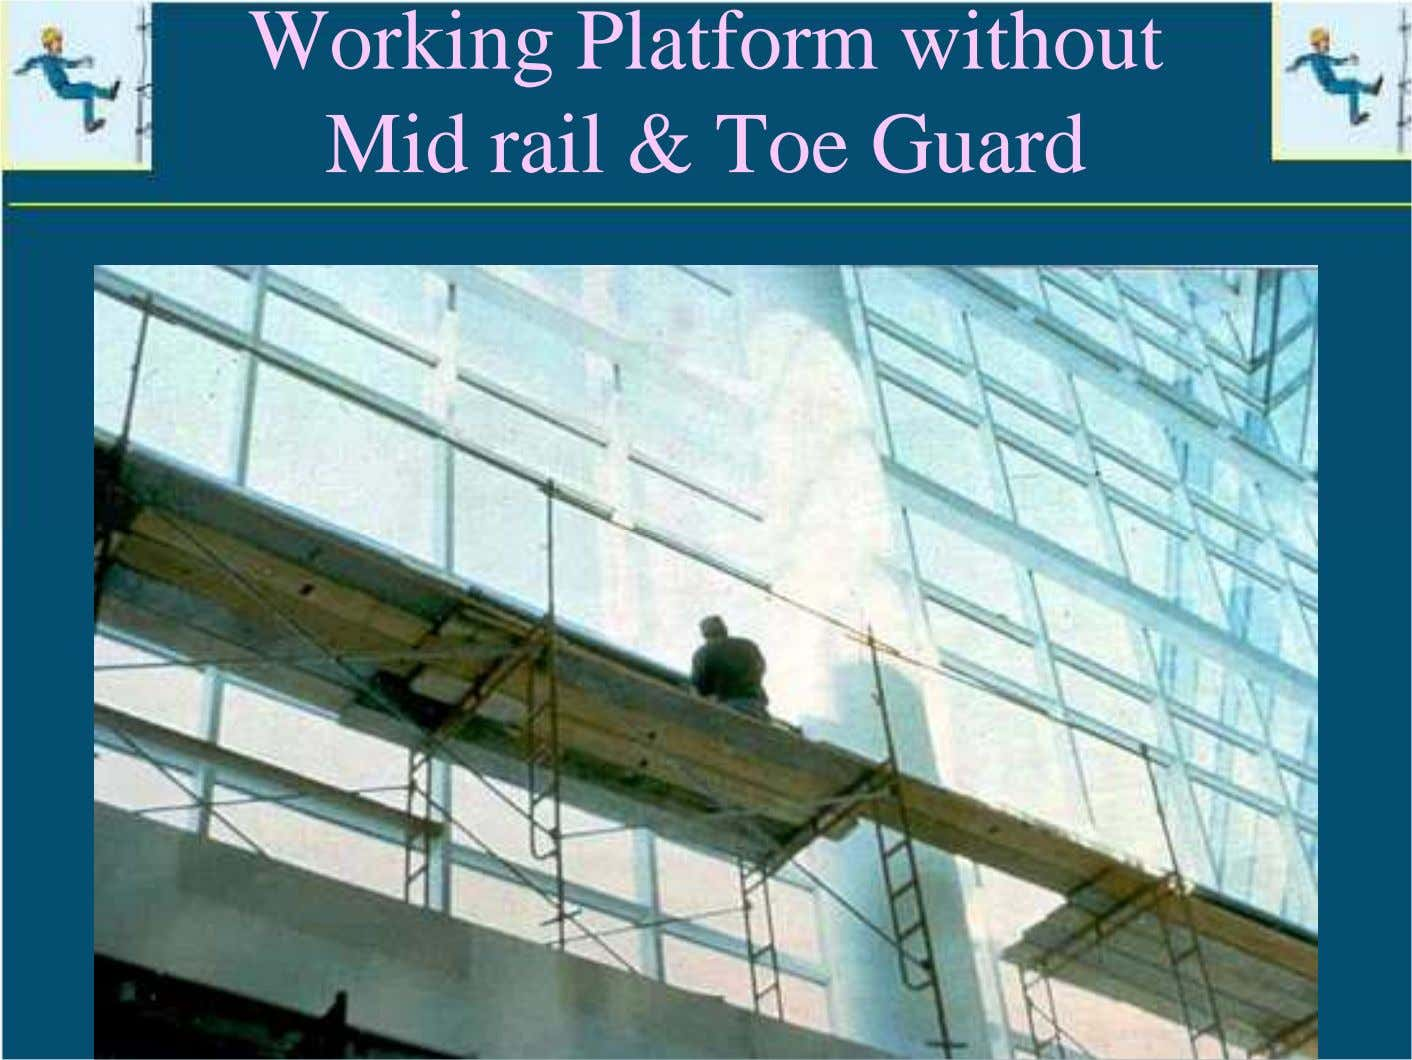 Working Platform without Mid rail & Toe Guard